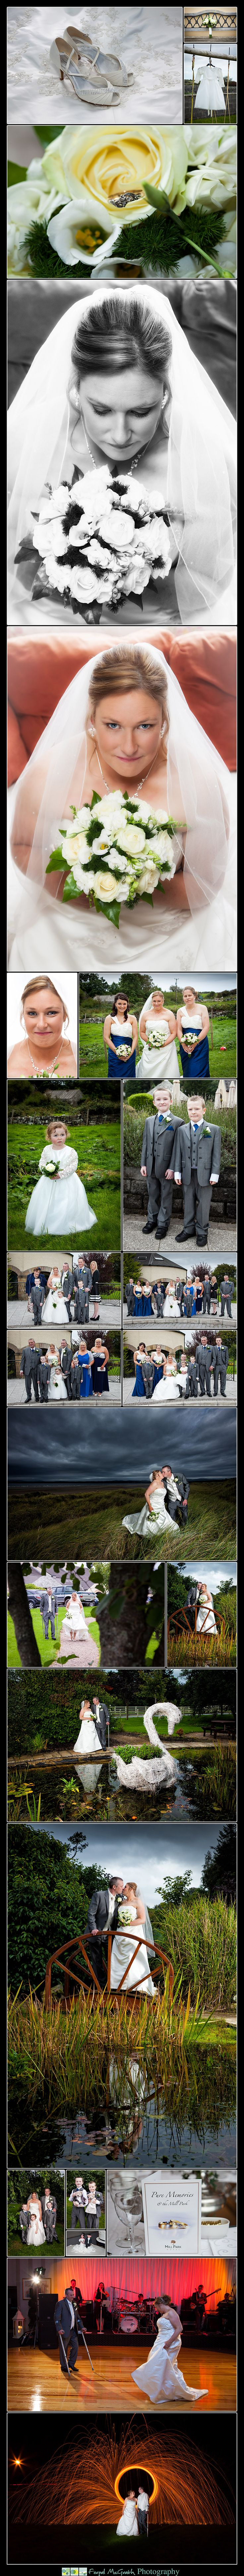 Mill Park Hotel Weddings Donegal Margaret and George Clarke -